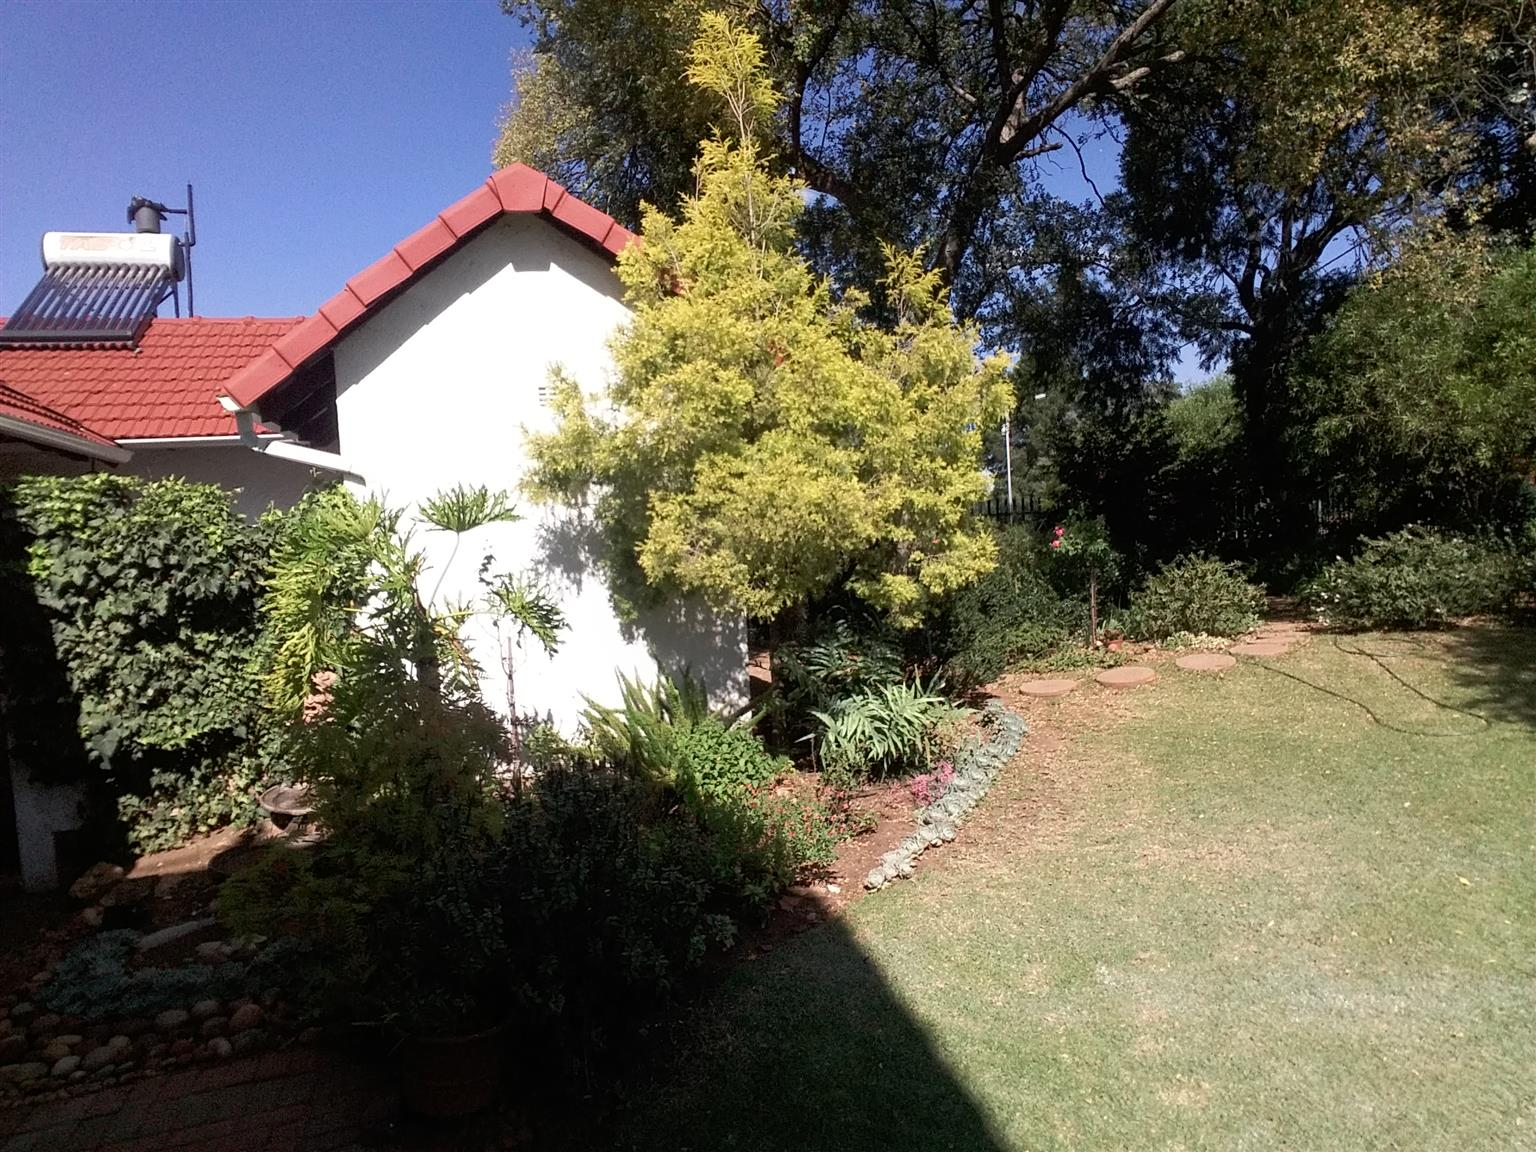 Big House, 2 flats in quiet residential area with very well designed and kept garden, also solar